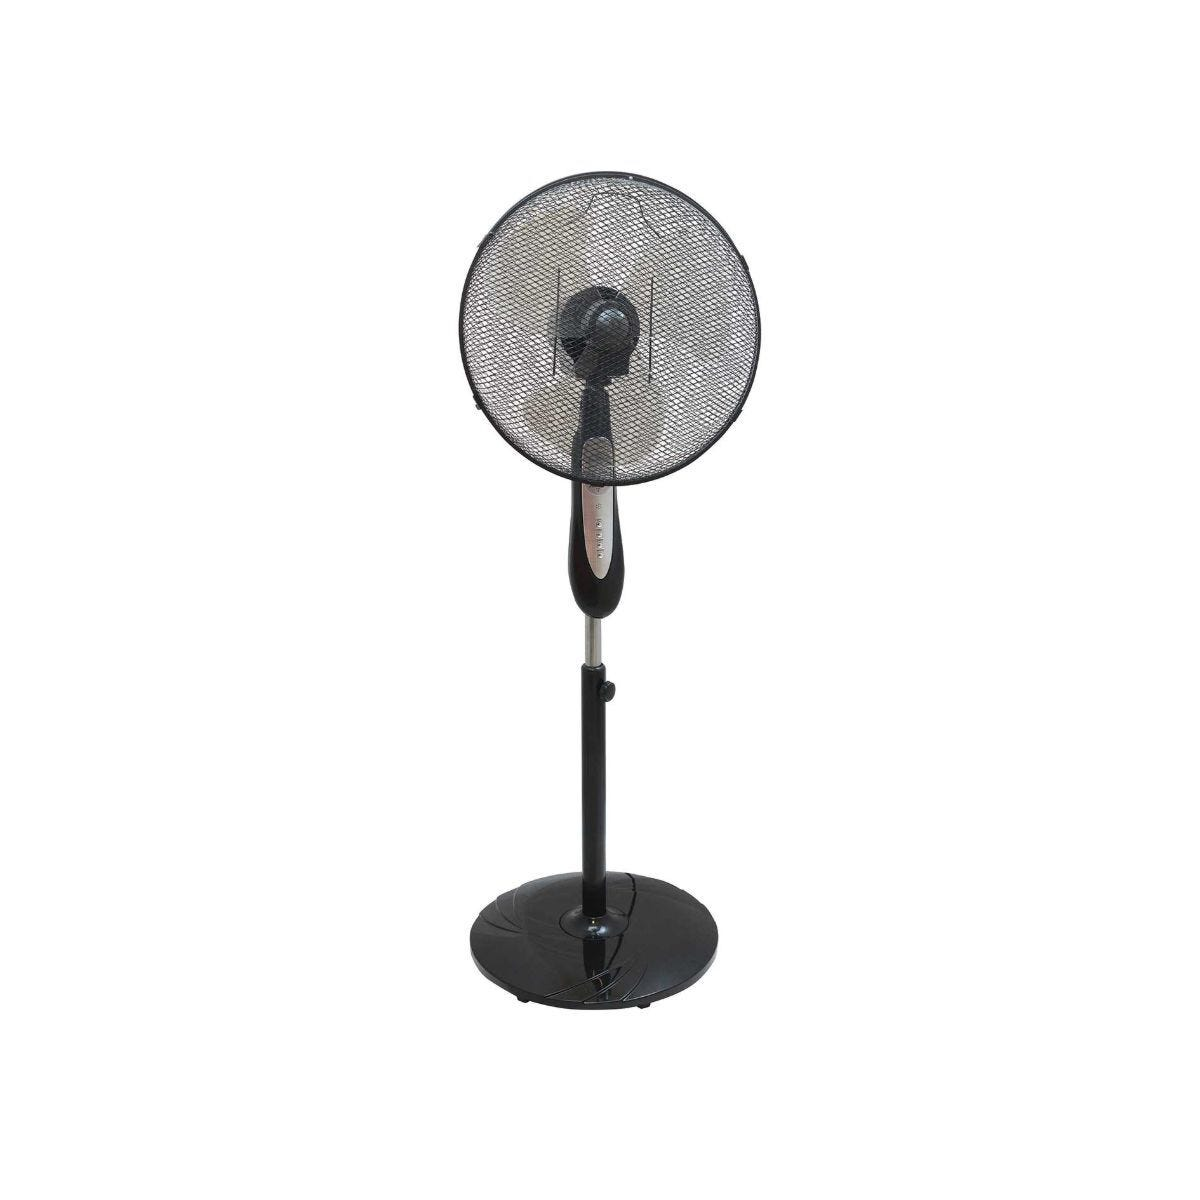 Ryman Oscillating Standing Fan with Remote Control 16-inch